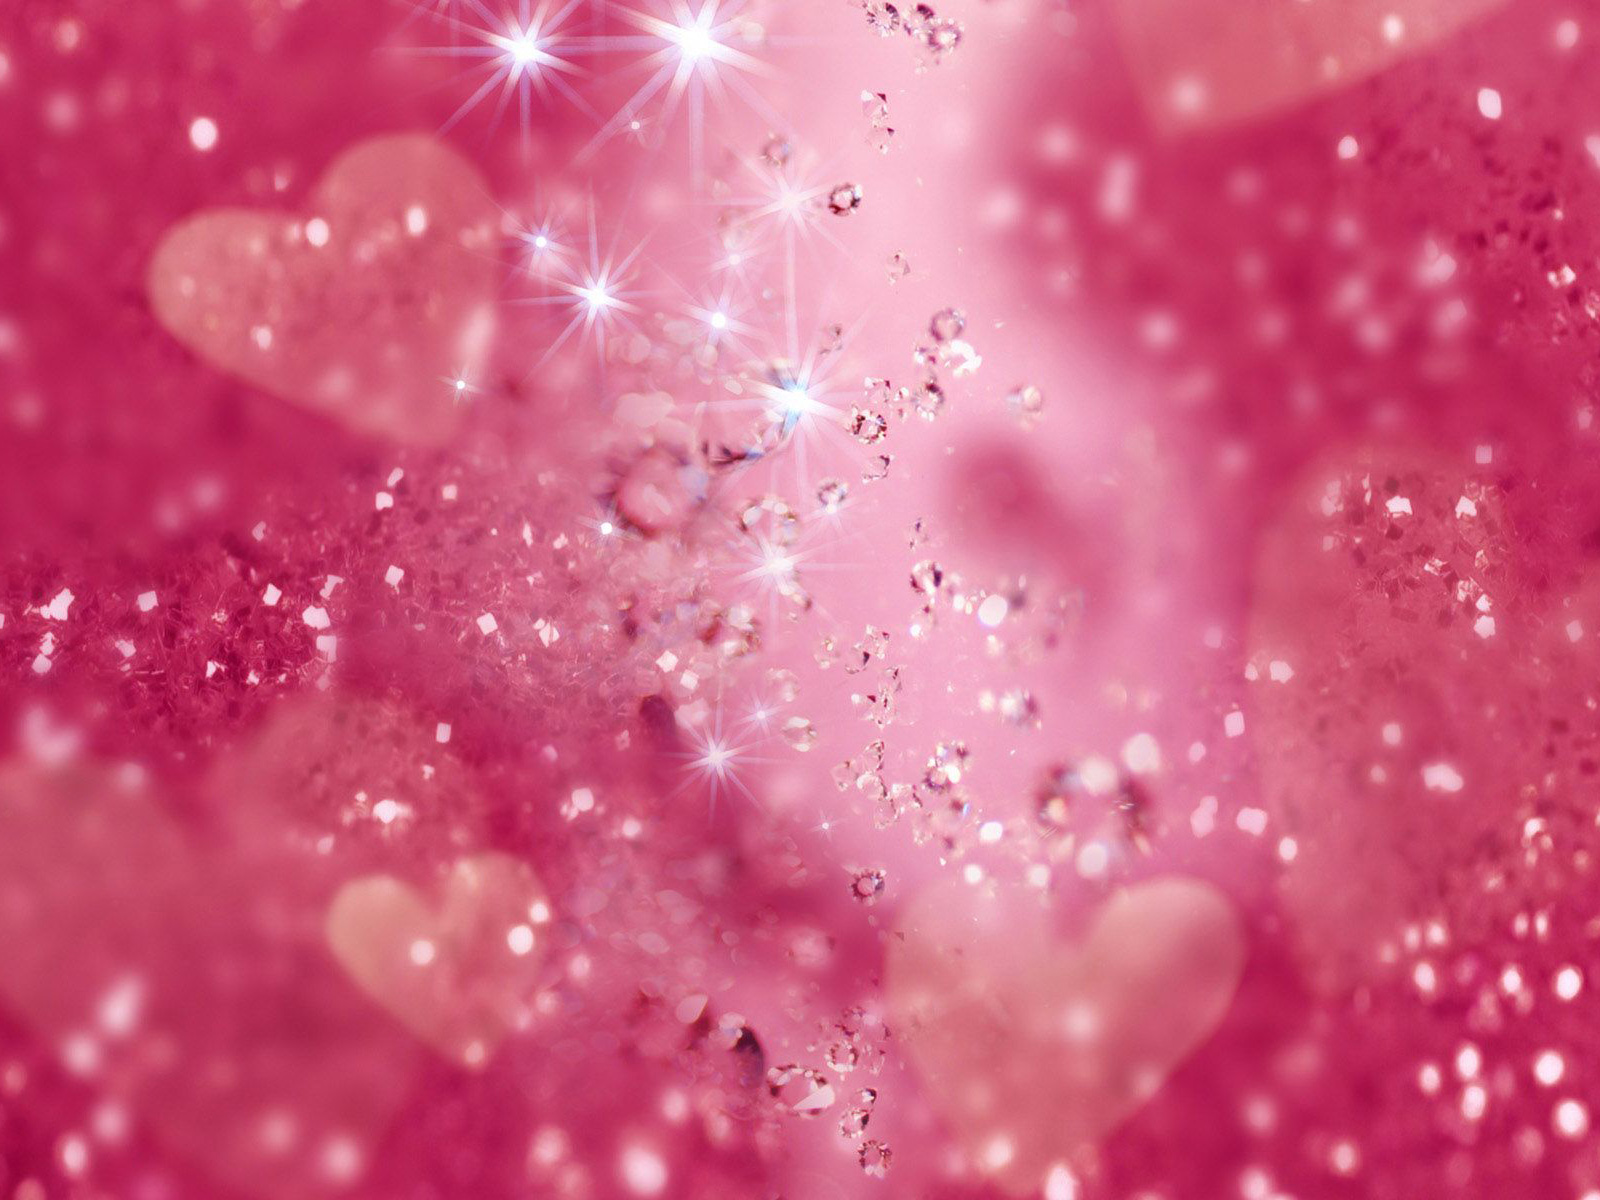 pink wallpaper love pink wallpapers cute pink wallpapers pink 1600x1200